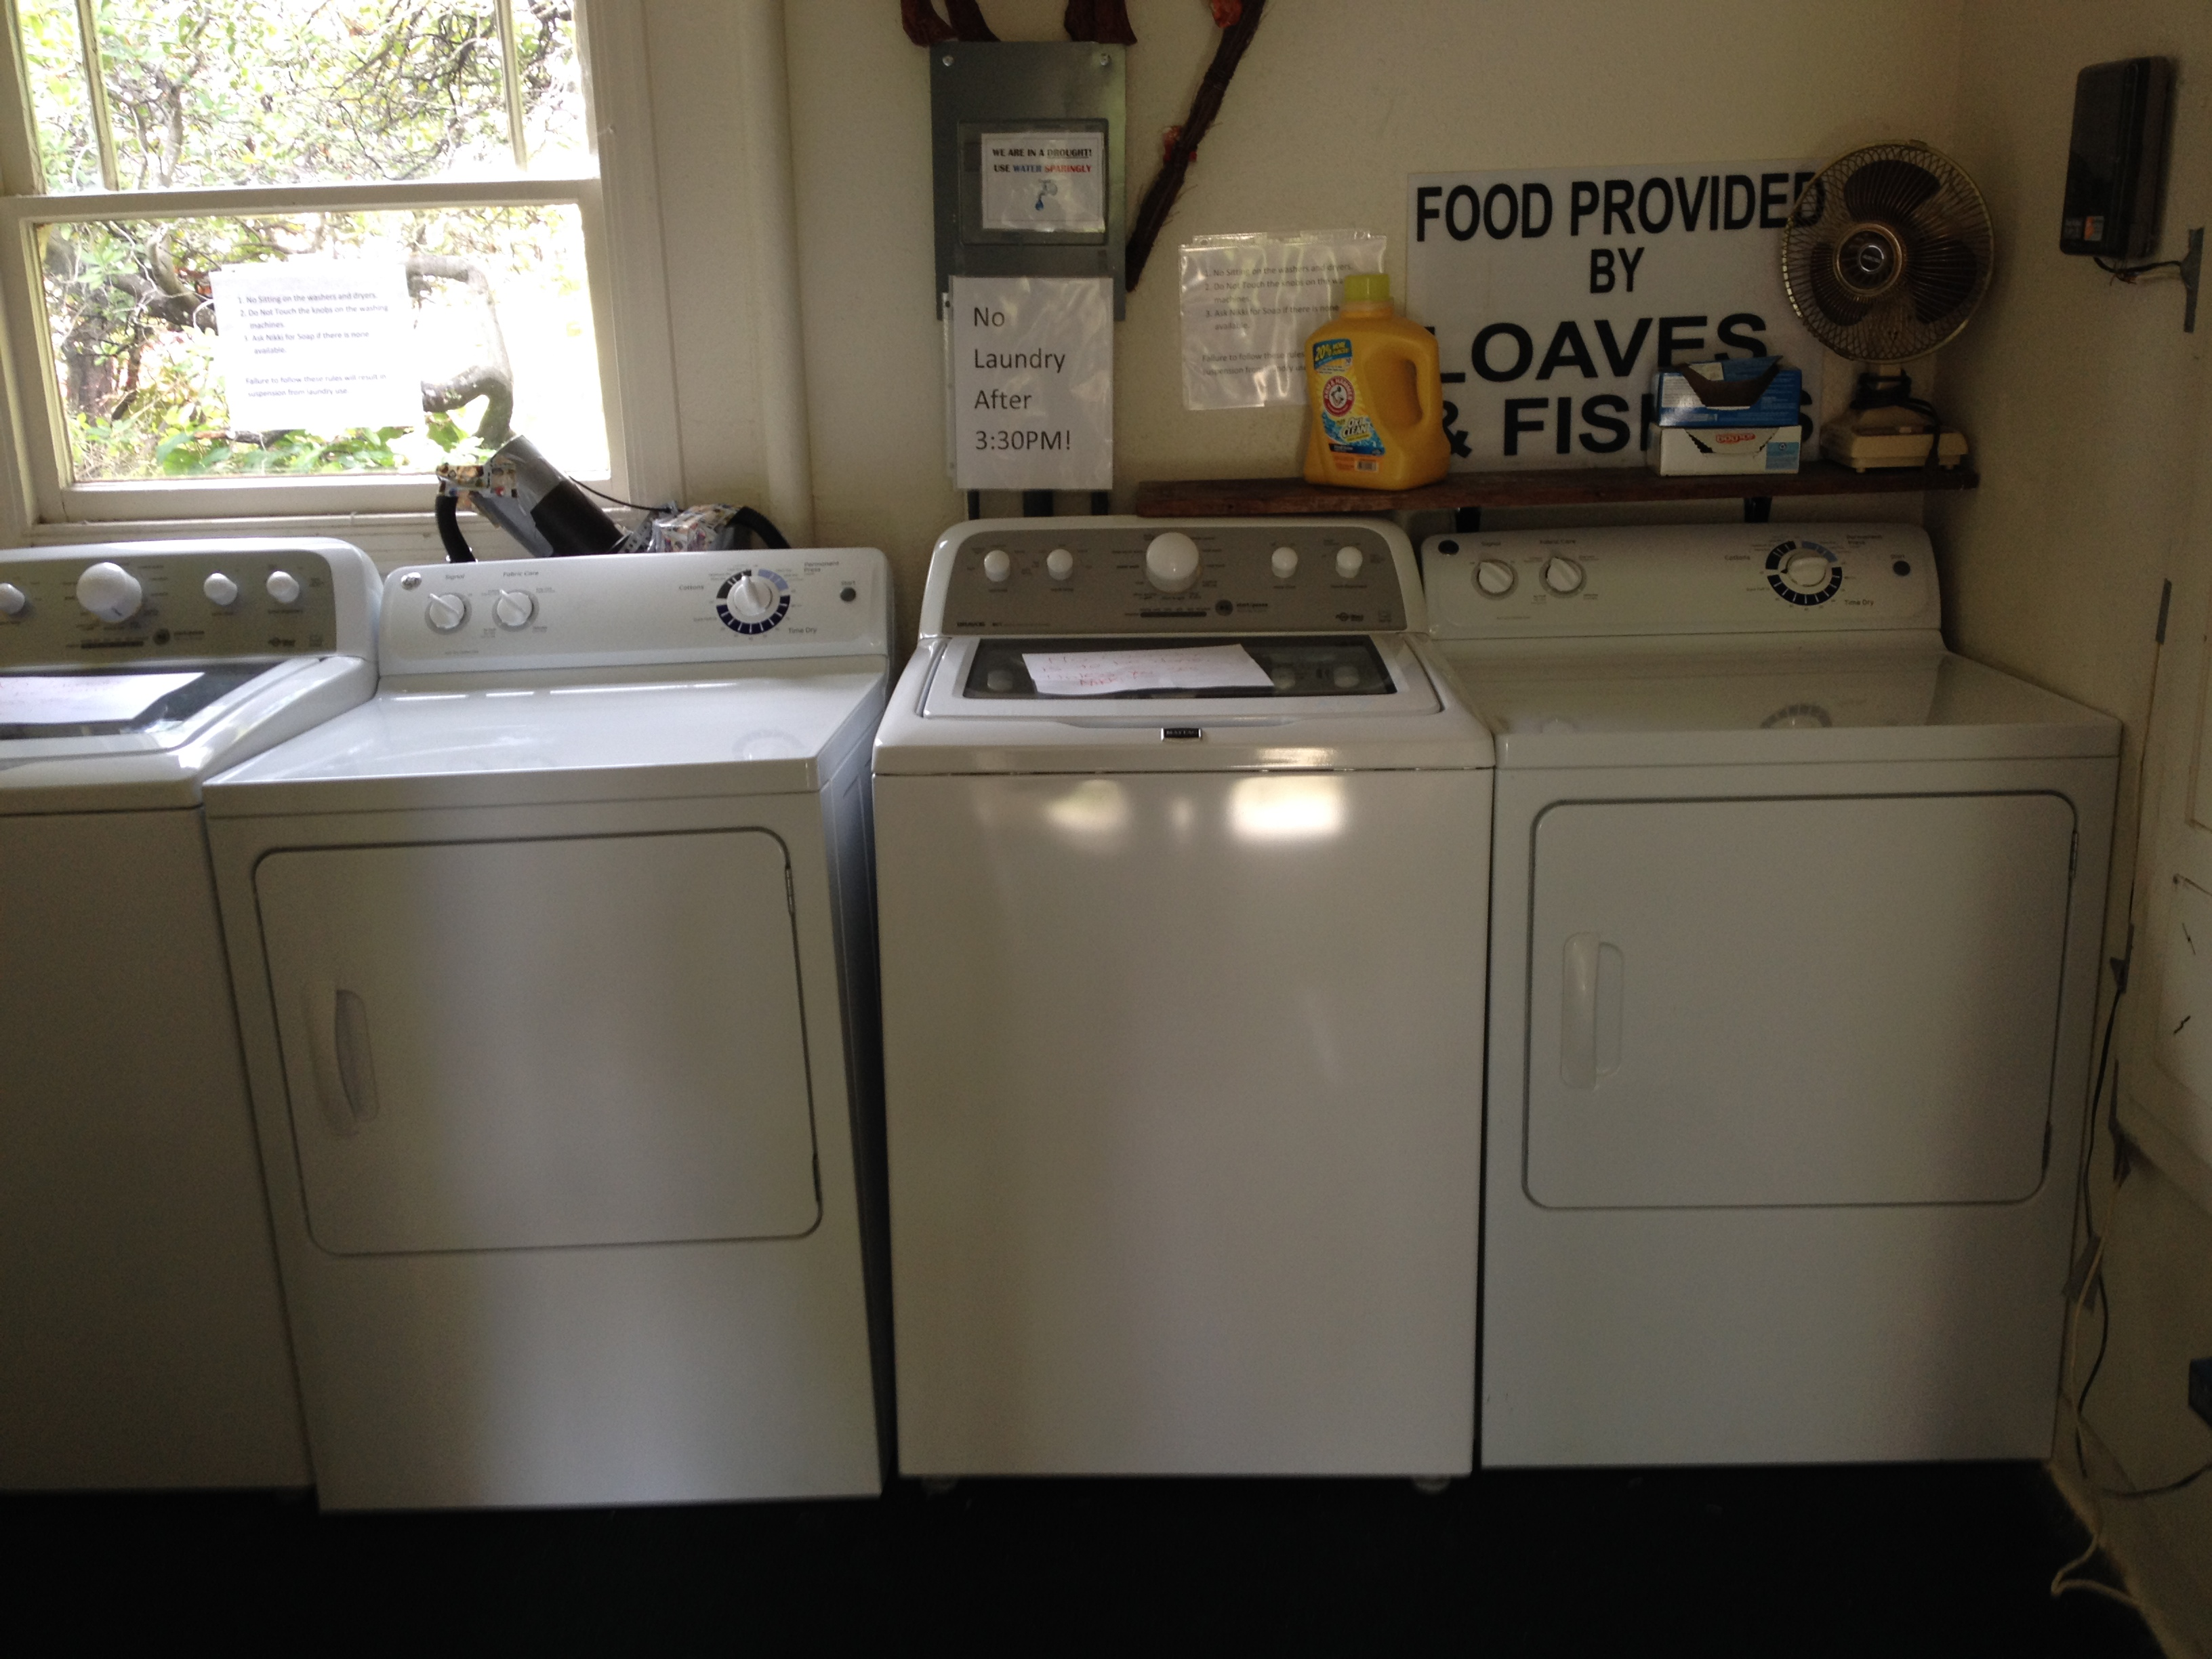 Uncategorized Contra Costa Appliance And Kitchen Center new washers and dryers trinity center walnut creek img 2040